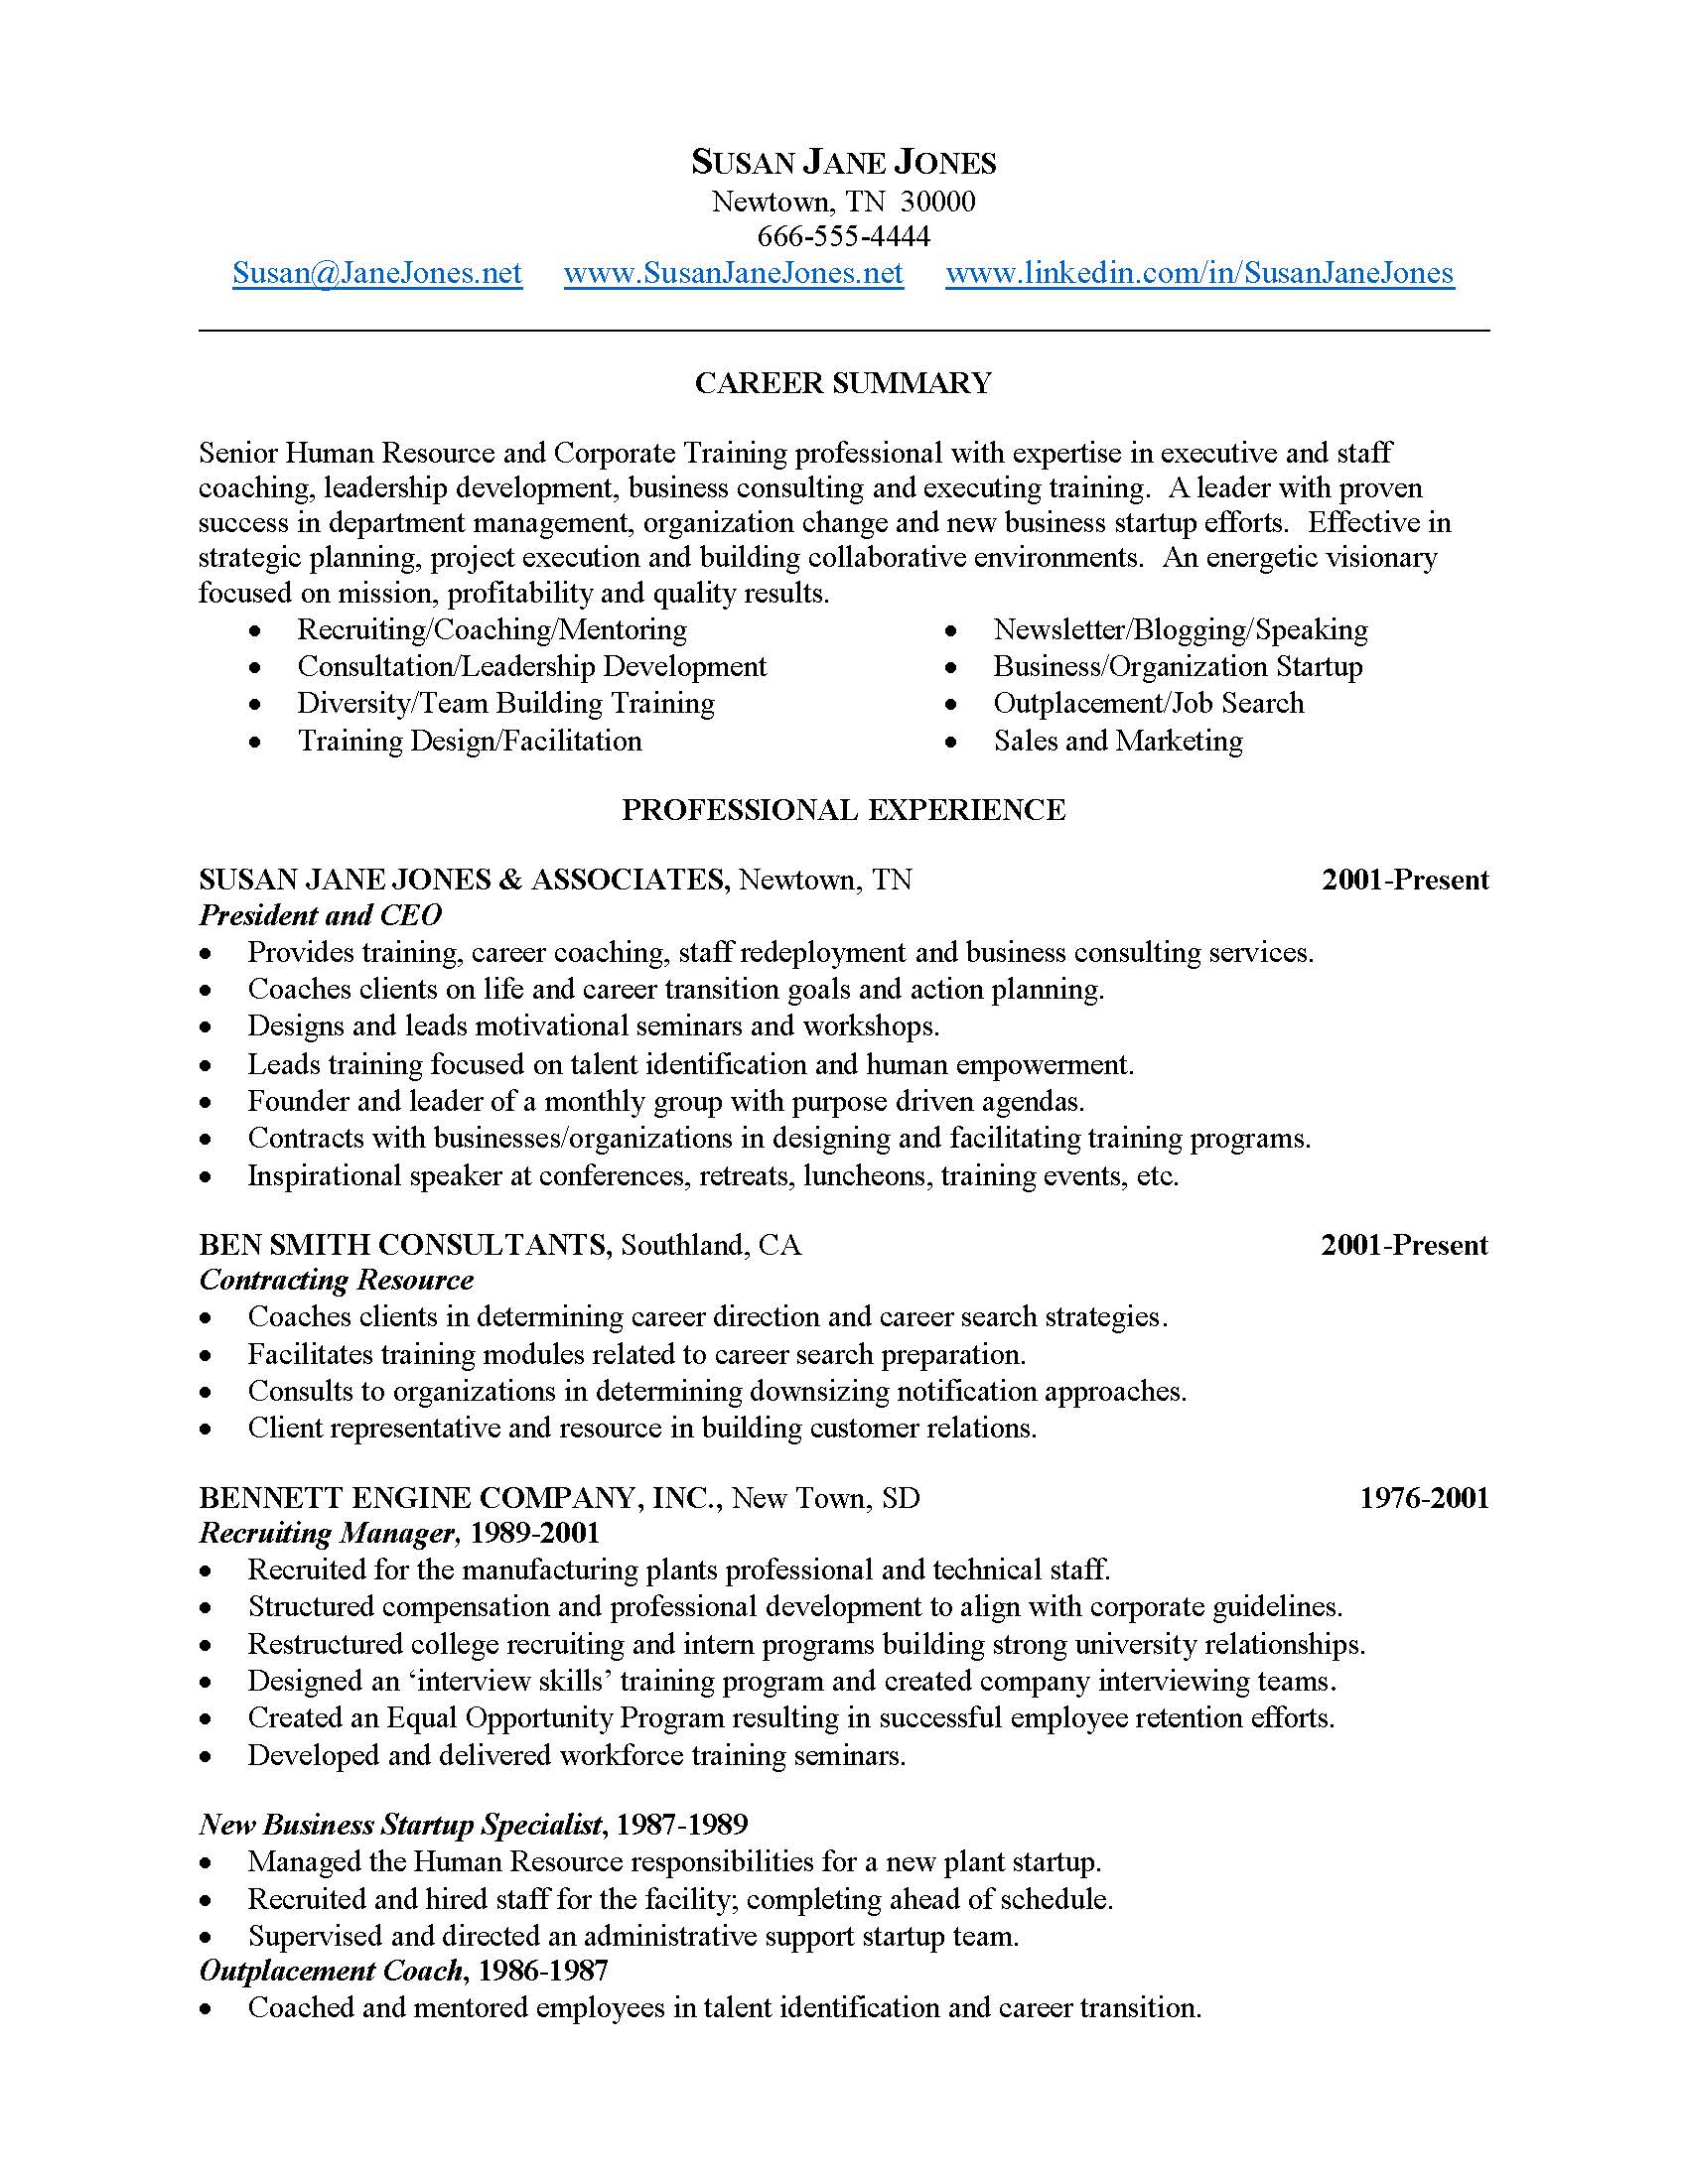 Resume Sample 2_Page_1